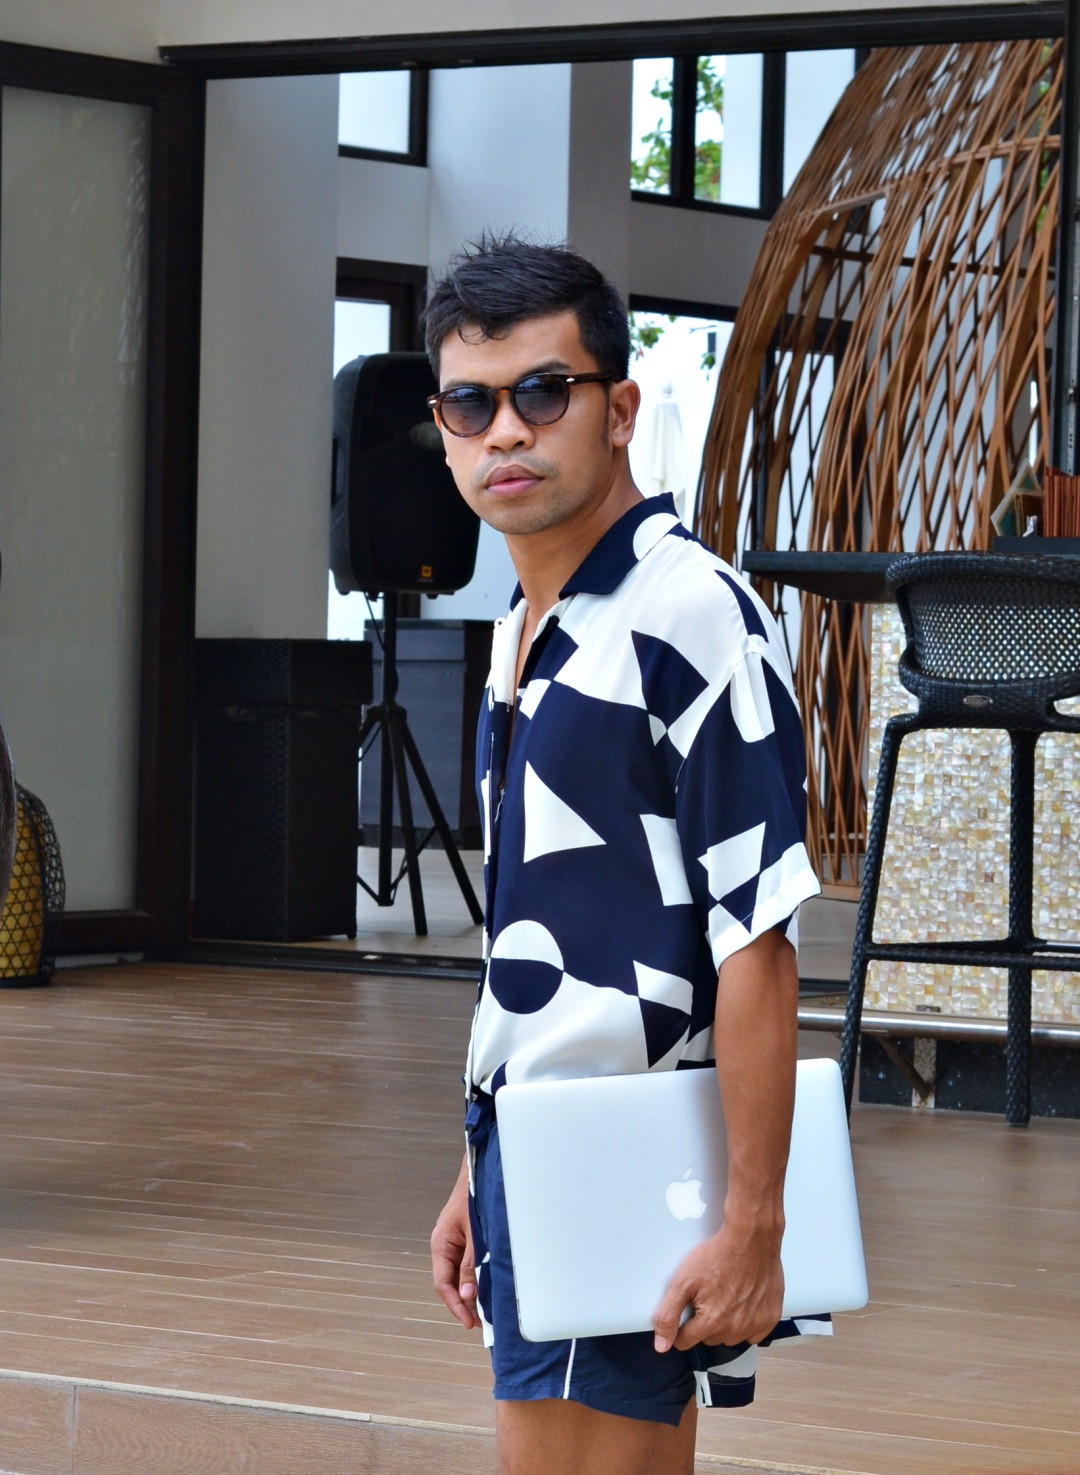 BLOGGER-CEBU-FASHION-MEN-ALMOSTABLOGGER.jpg